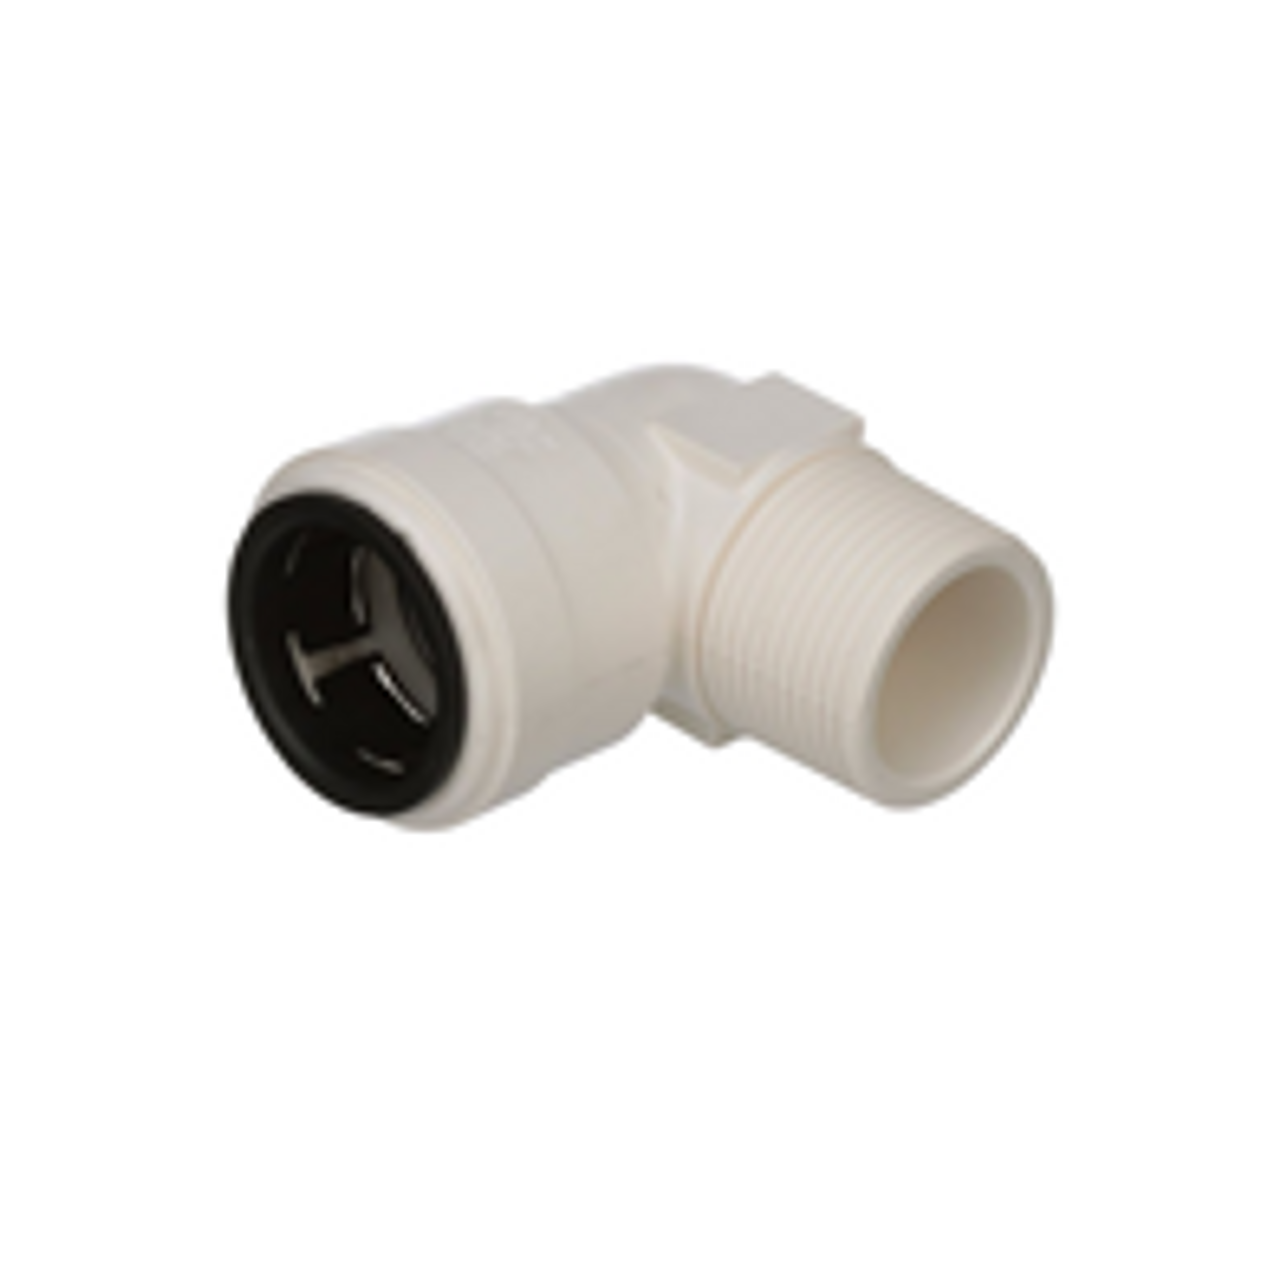 "1"" CTS x 1"" MPT elbow 3519-1816"